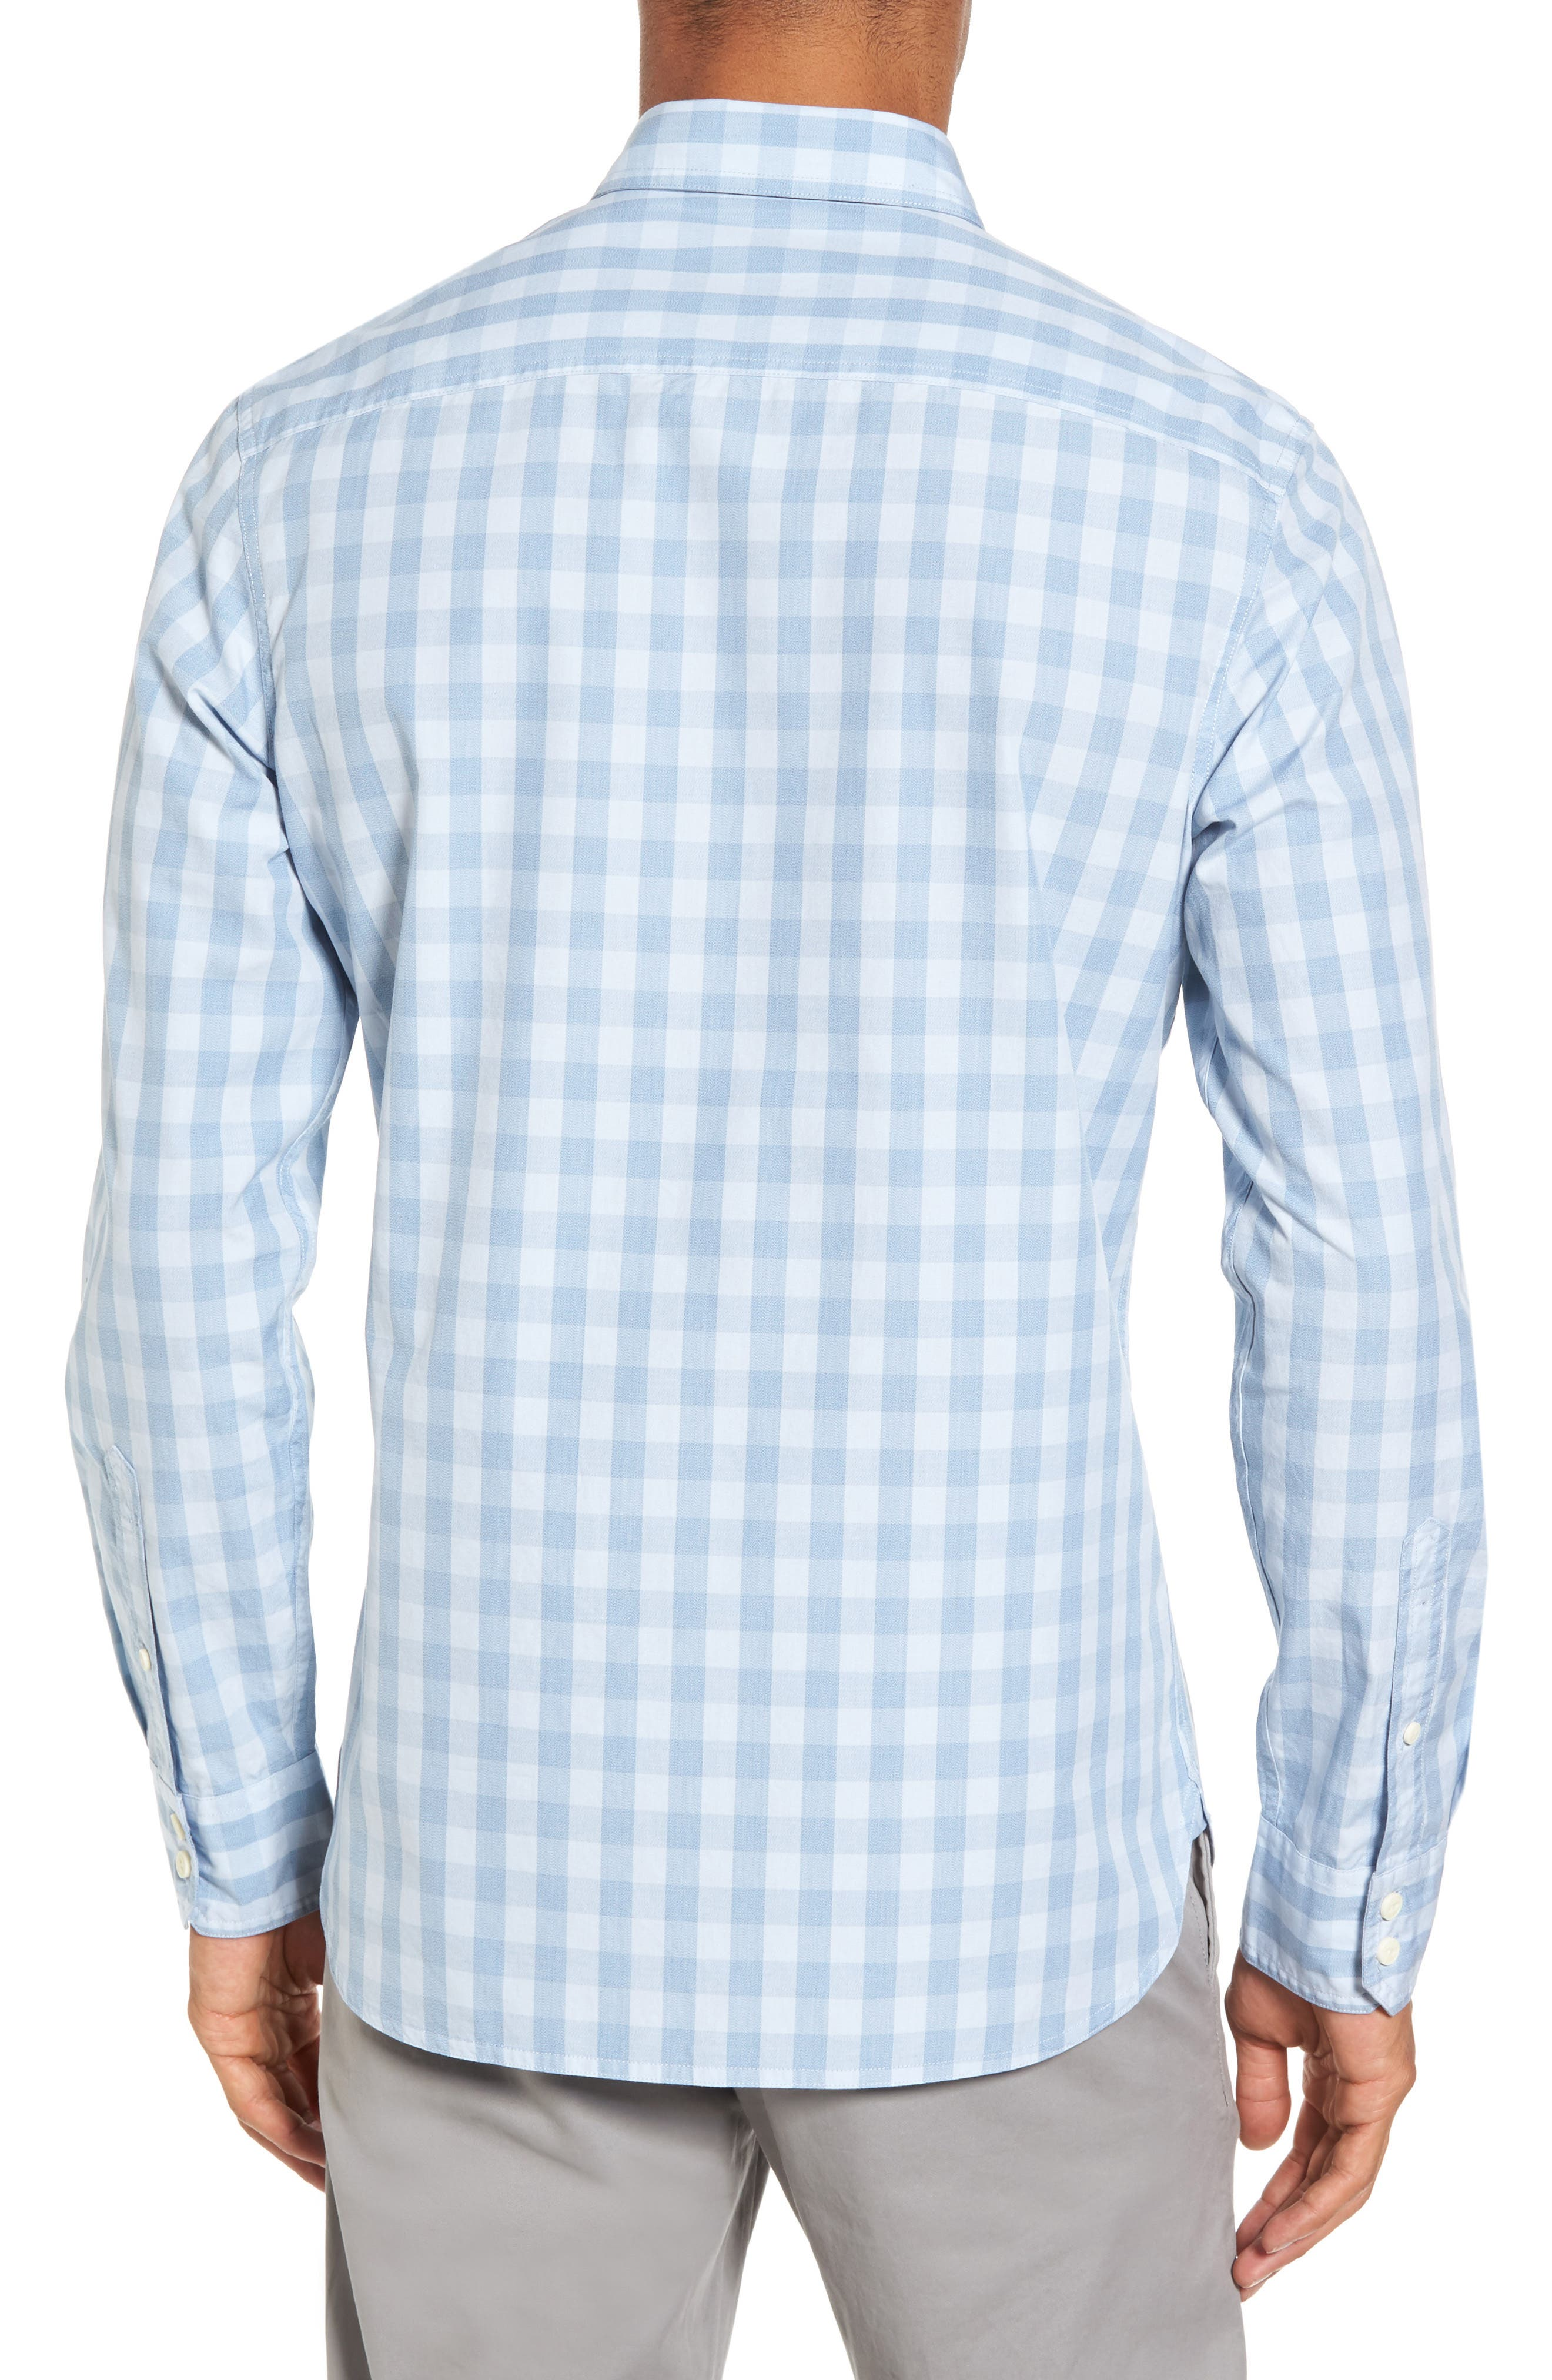 Trim Fit Washed Check Workwear Shirt,                             Alternate thumbnail 3, color,                             Blue Cashmere Check